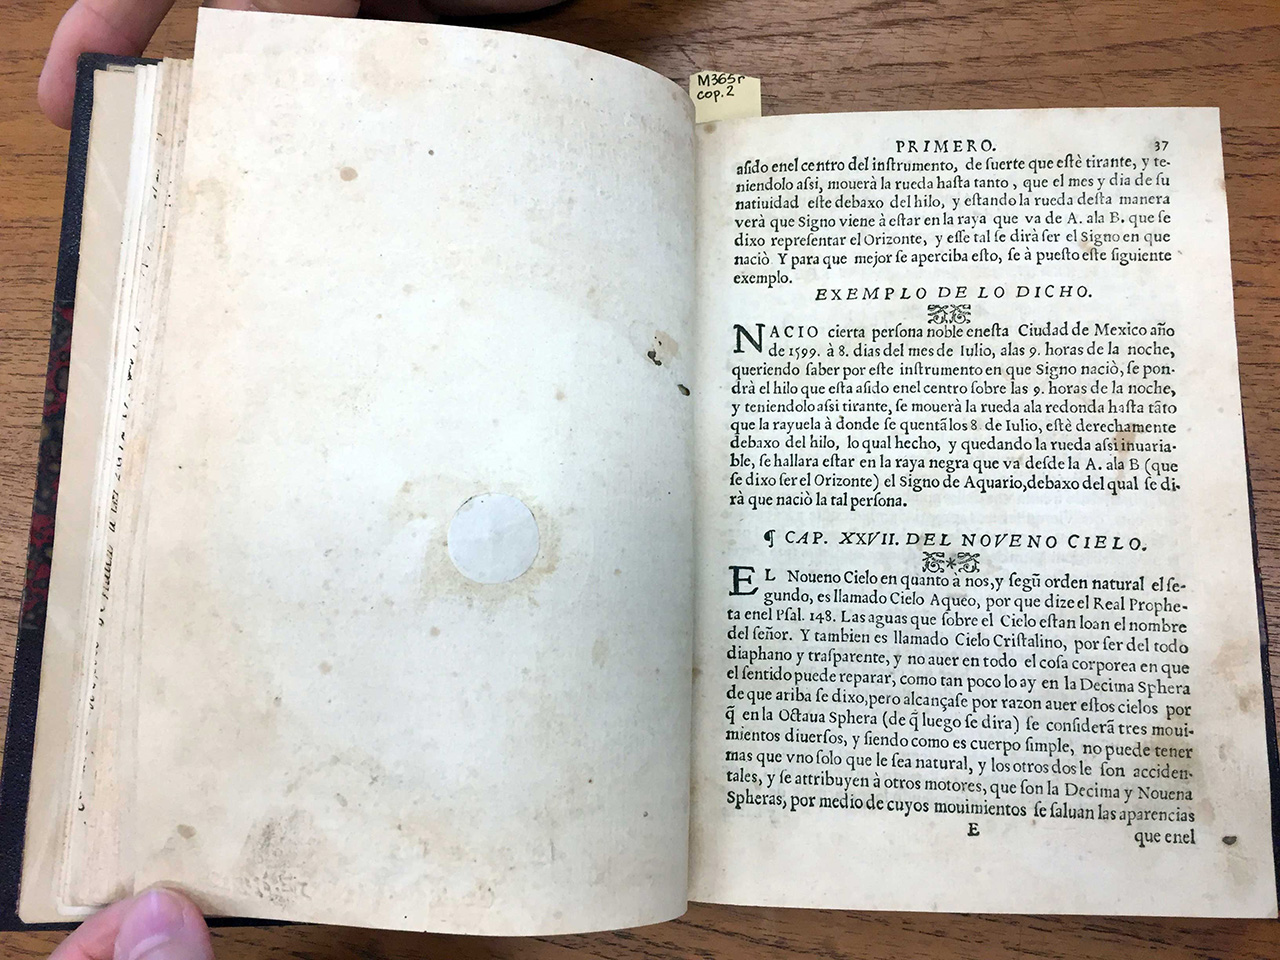 (Figs 11 & 12) Henrrico Martínez, Repertoire of the Times, and Natural History of this New Spain, 1606. Printed in the author's own Printing House. Front and back of page with horoscope artifact, which skipped a page number.